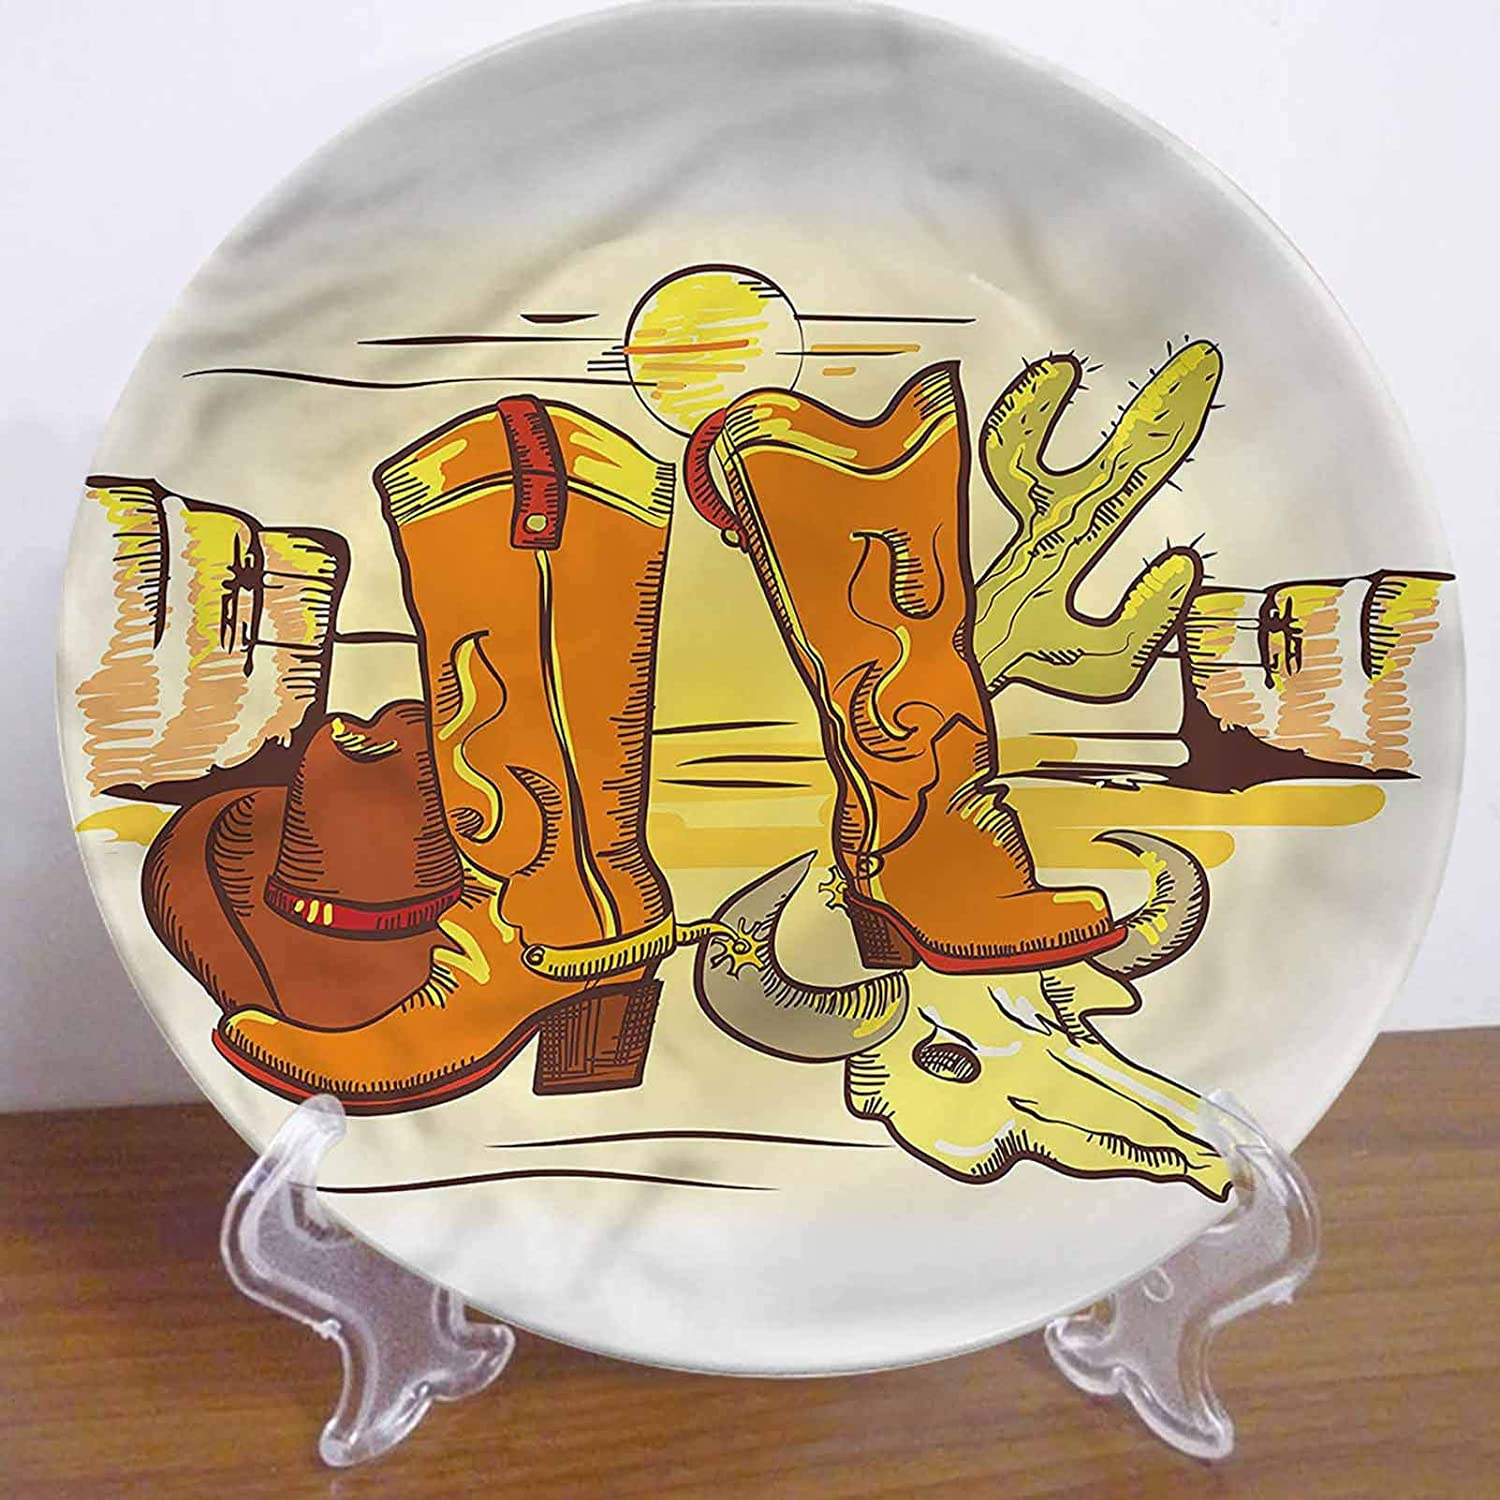 LCGGDB 8 Inch Western Pattern Ceramic Decorative Plate,Cowboy Accessories Boots Dinner Plate Decor Accessory for Dining, Parties, Wedding